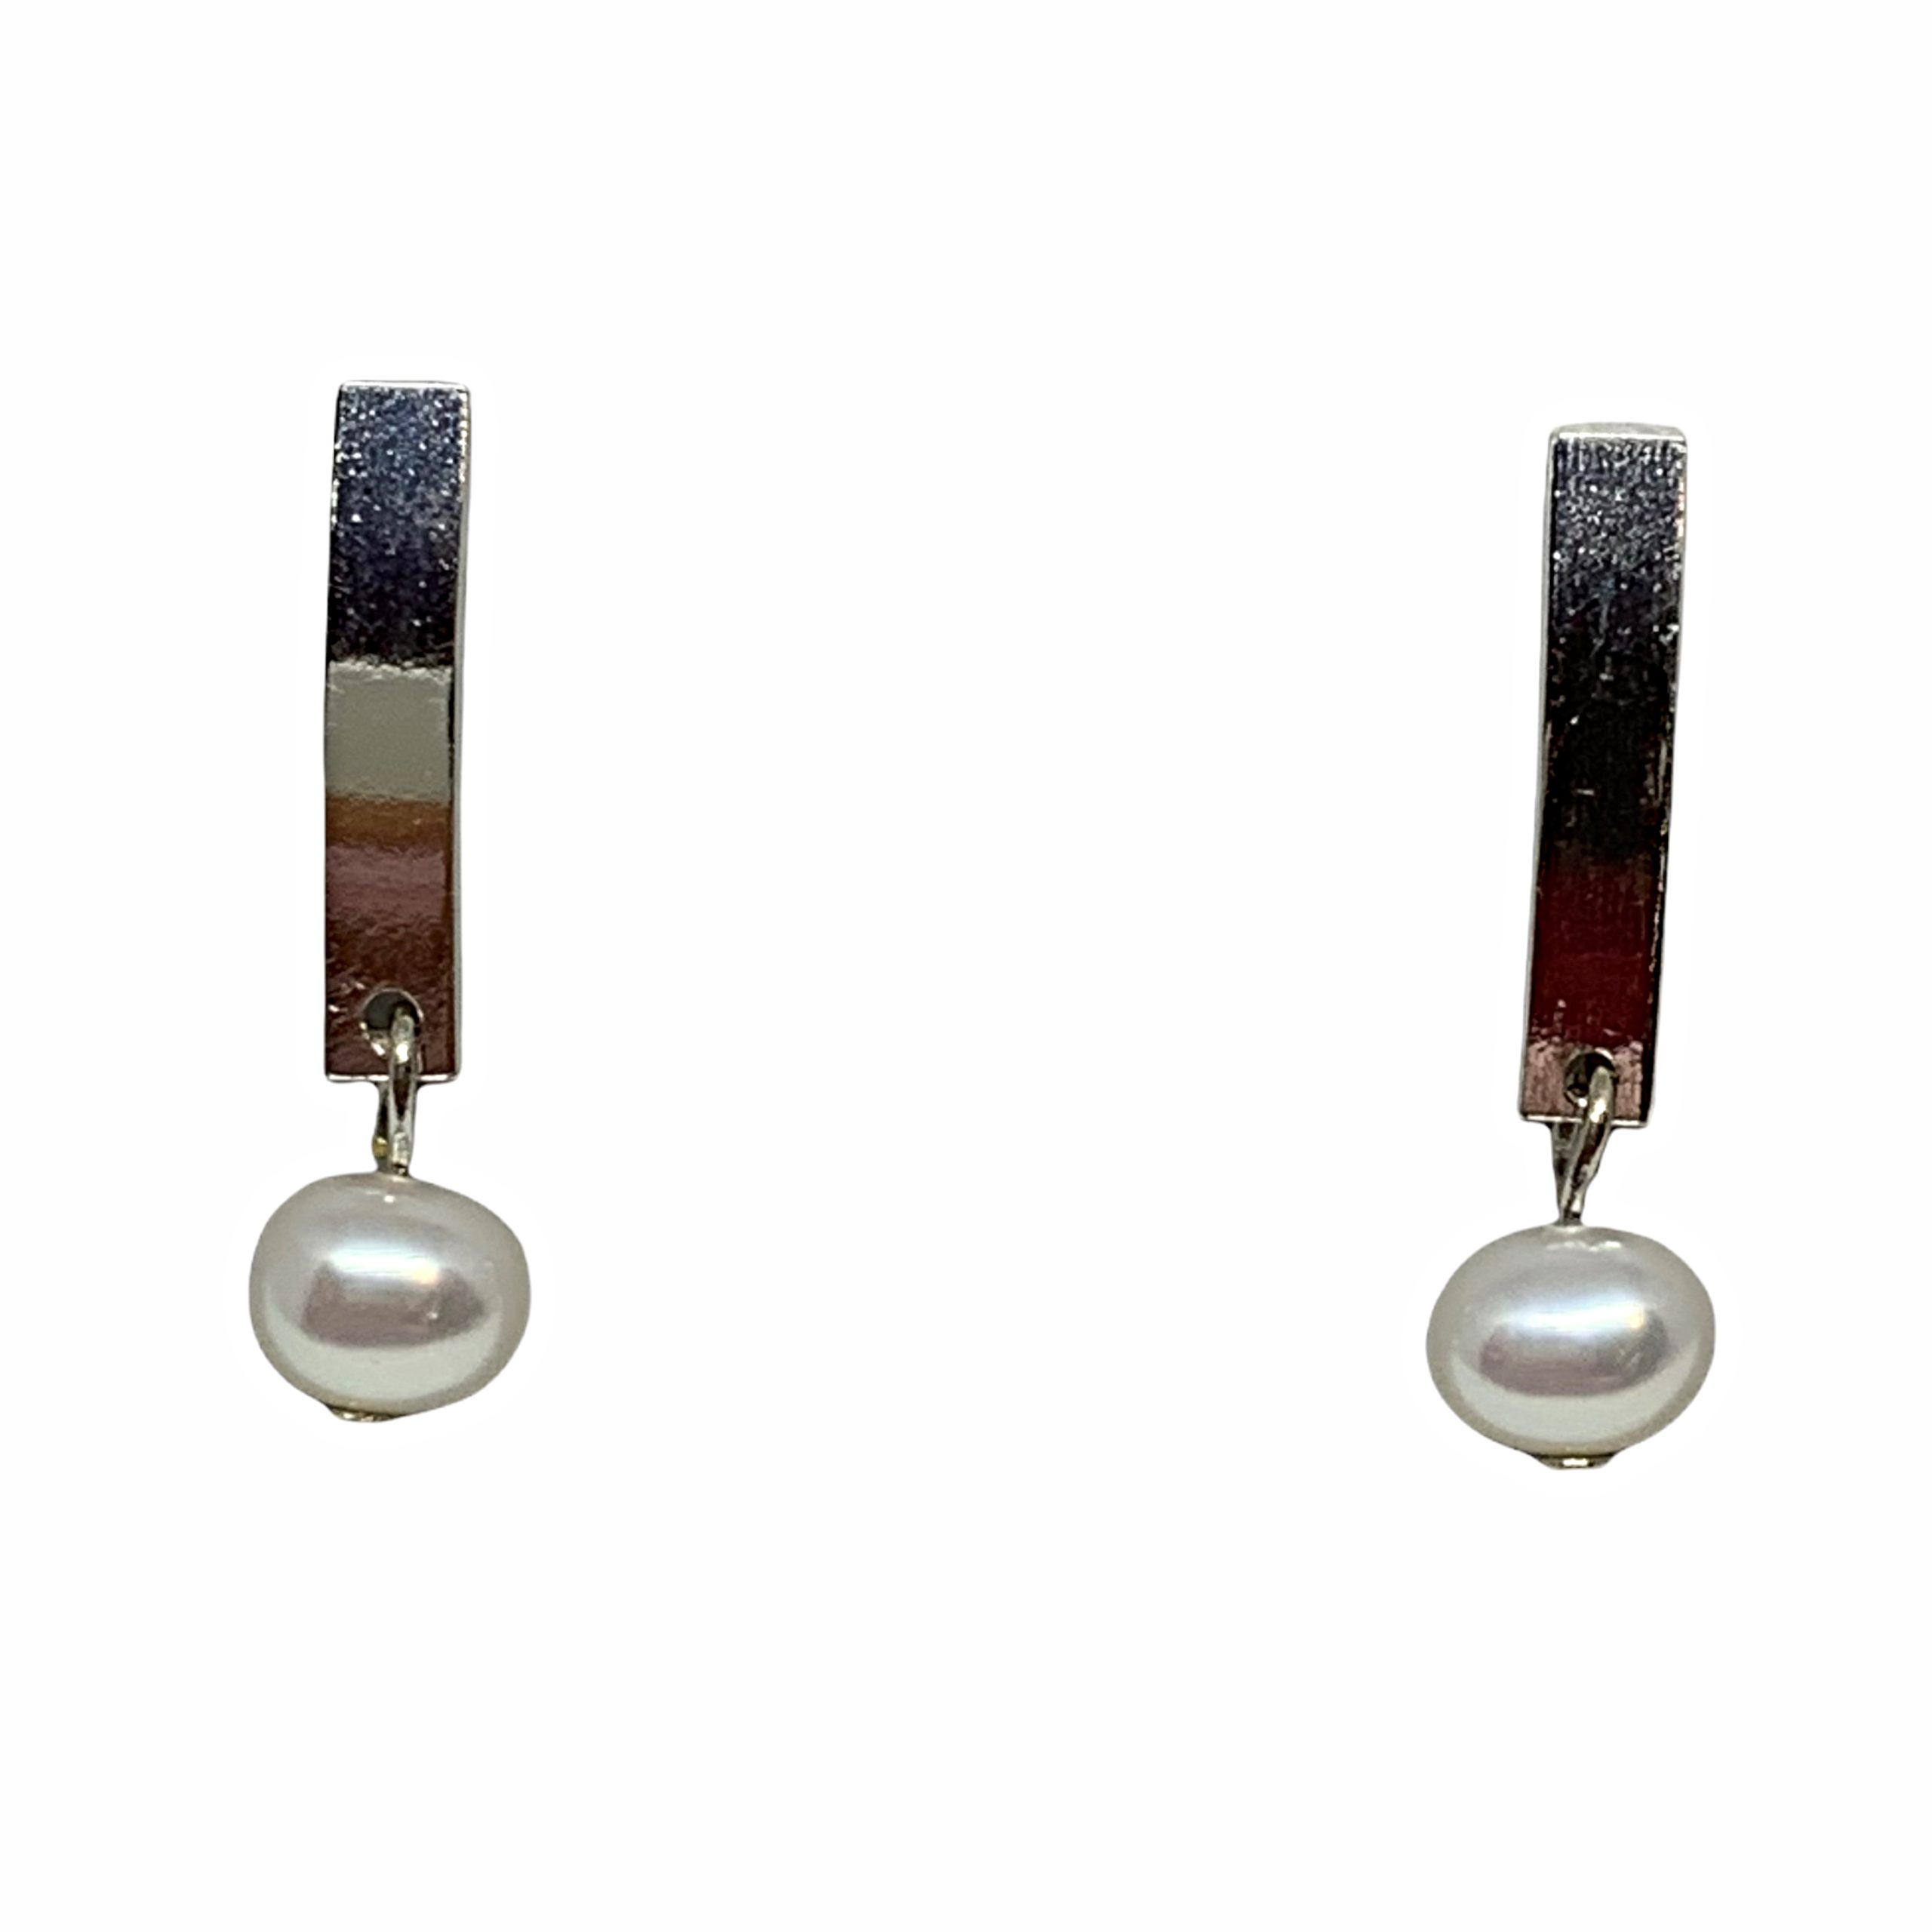 Handmade sterling silver and pearl earrings by A&R Jewellery | Effusion Art Gallery + Cast Glass Studio, Invermere BC